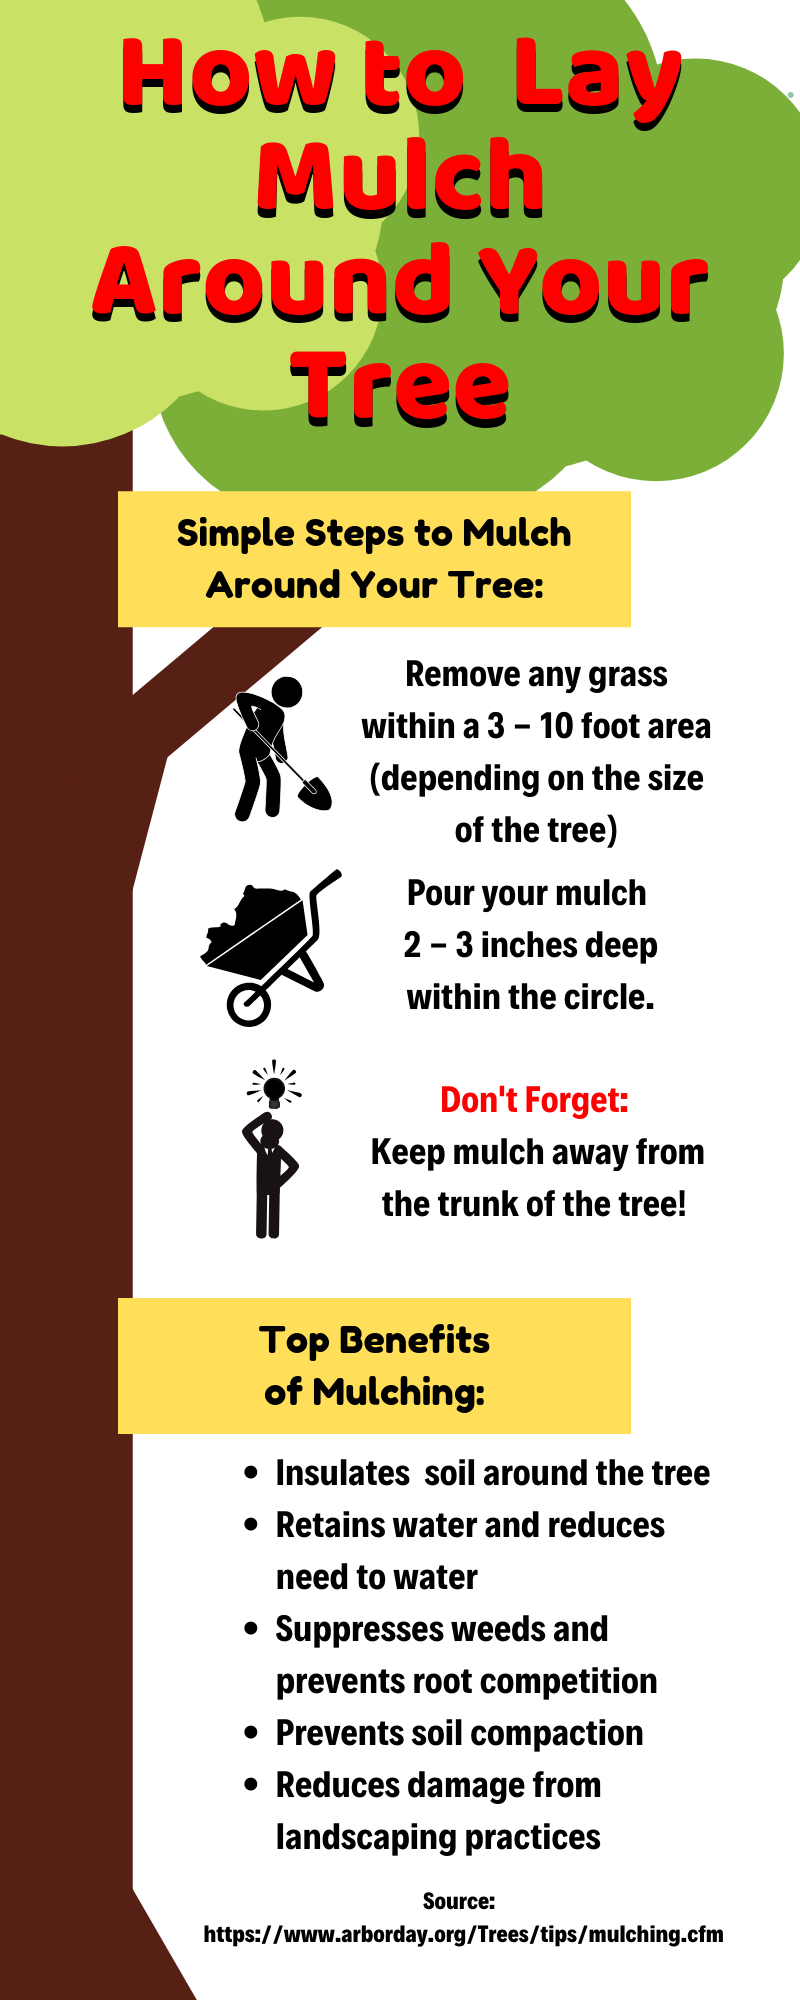 how to lay mulch infographic, mulching how to guide, mulch around trees infographic, mulch benefits list, tree, instructions